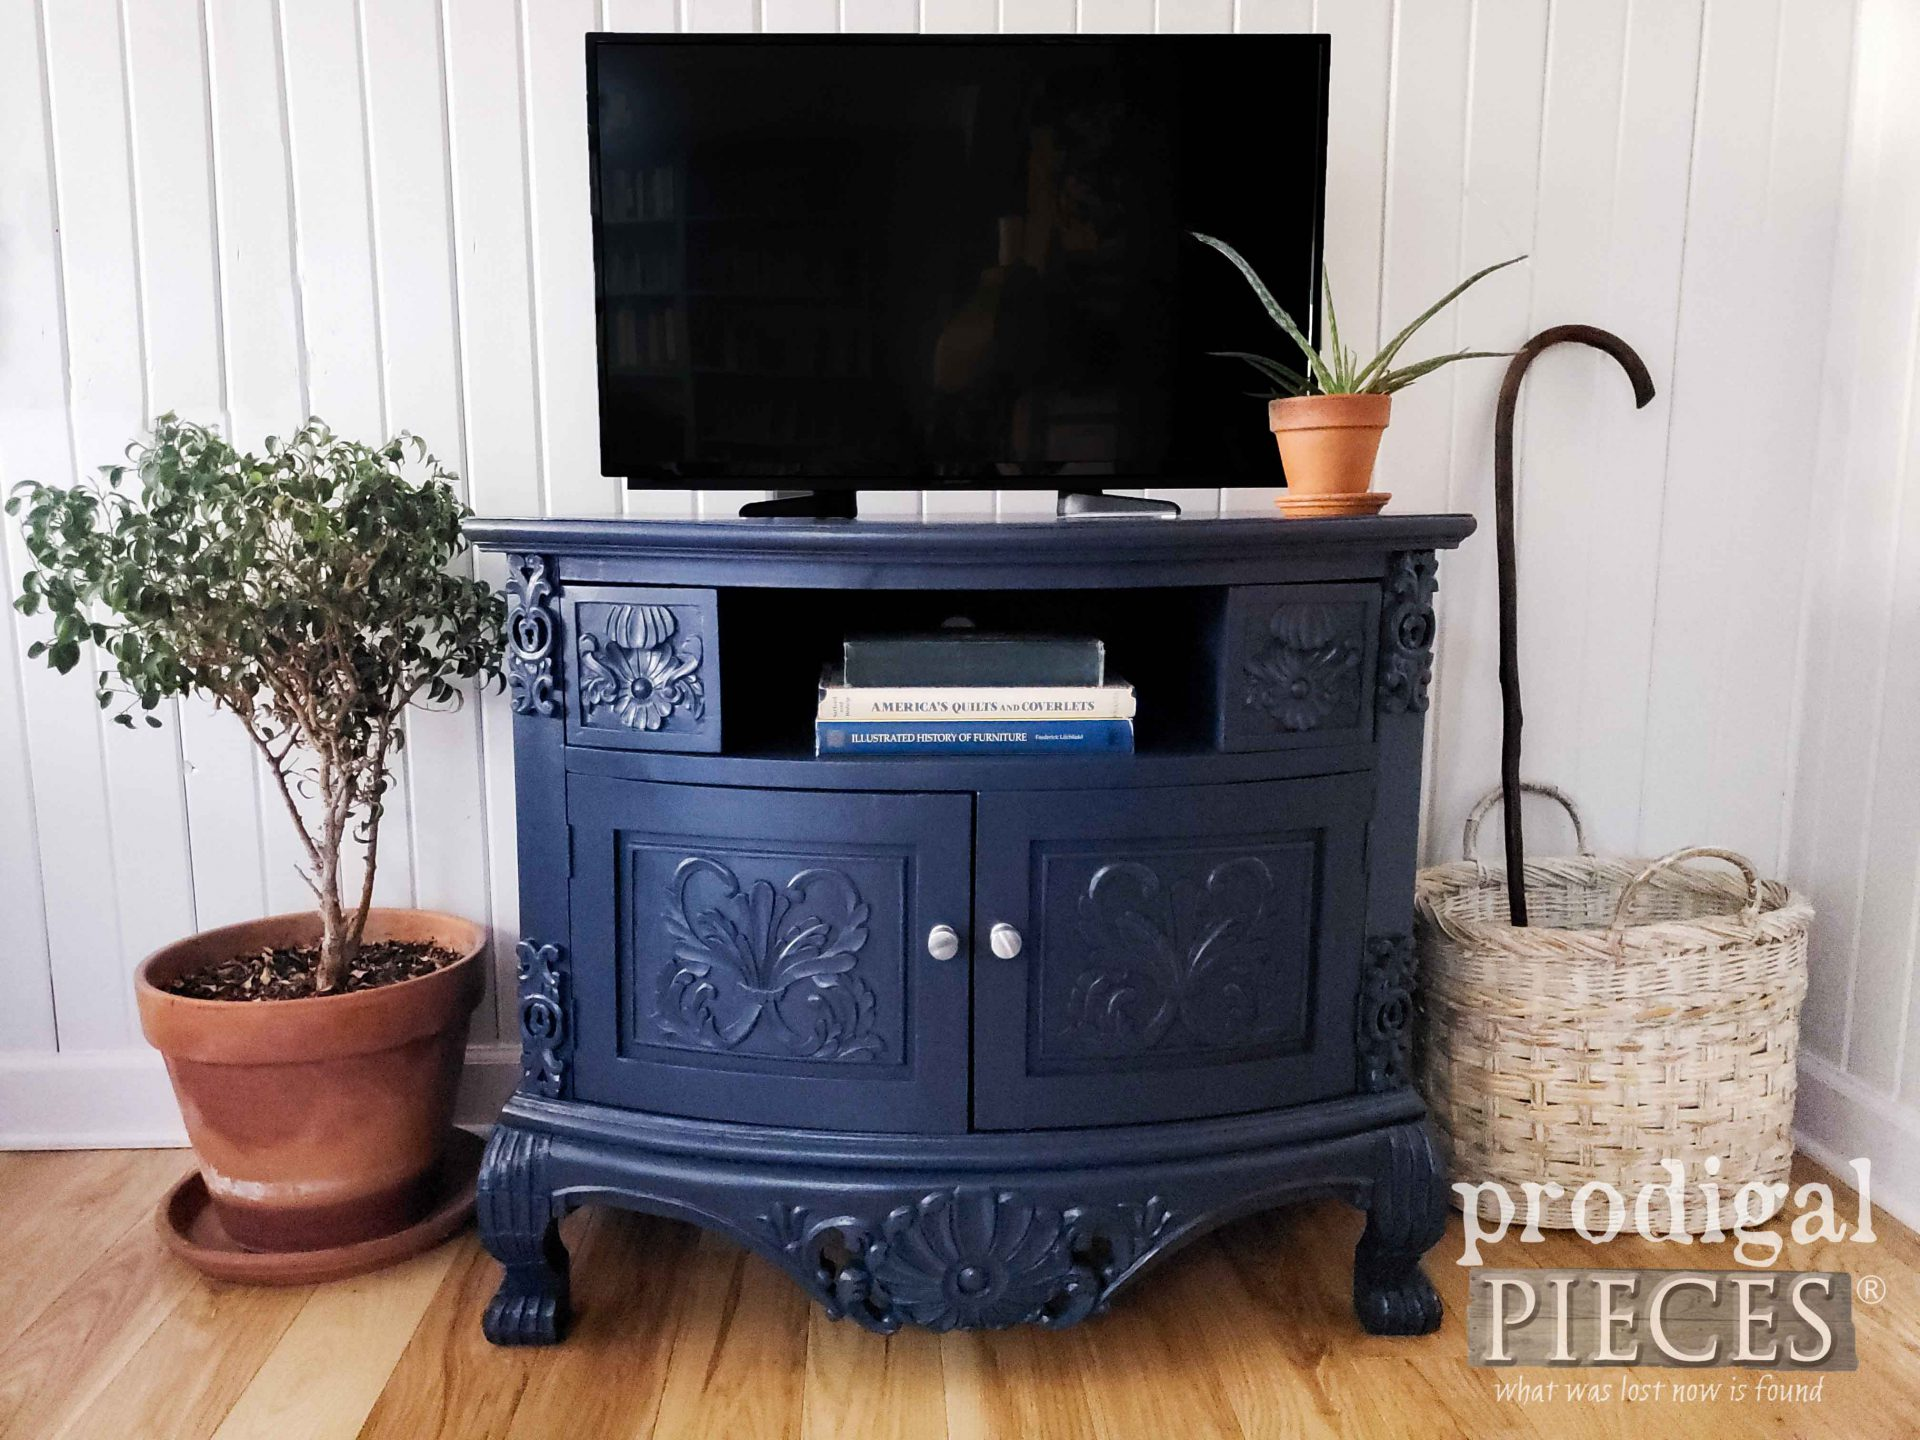 Hale Navy Blue Painted Entertainment Center with Tutorial by Larissa of Prodigal Pieces | prodigalpieces.com #prodigalpieces #furniture #diy #home #boho #homedecor